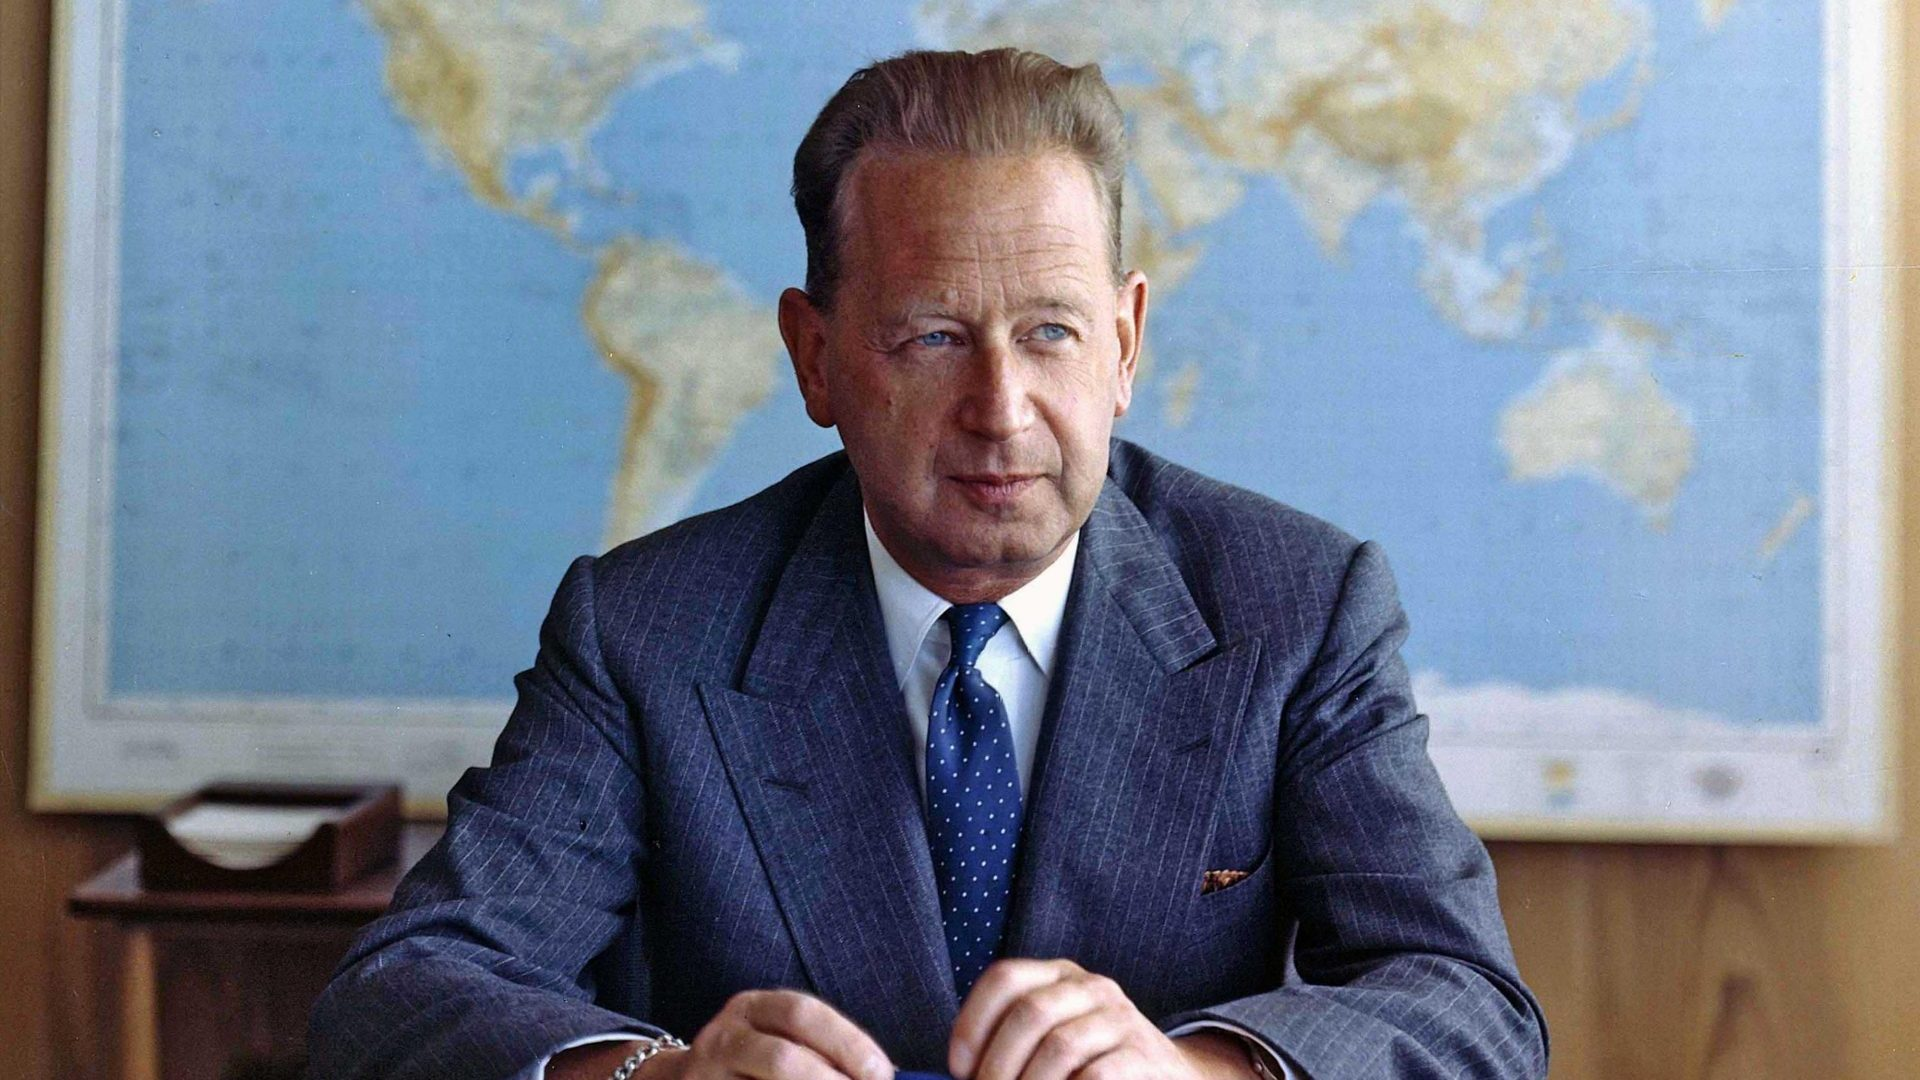 Dag Hammarskjold, the second UN secretary-general, in a photo from 1960, the year before his death in an air crash. Credit: Photo12/Universal Images Group